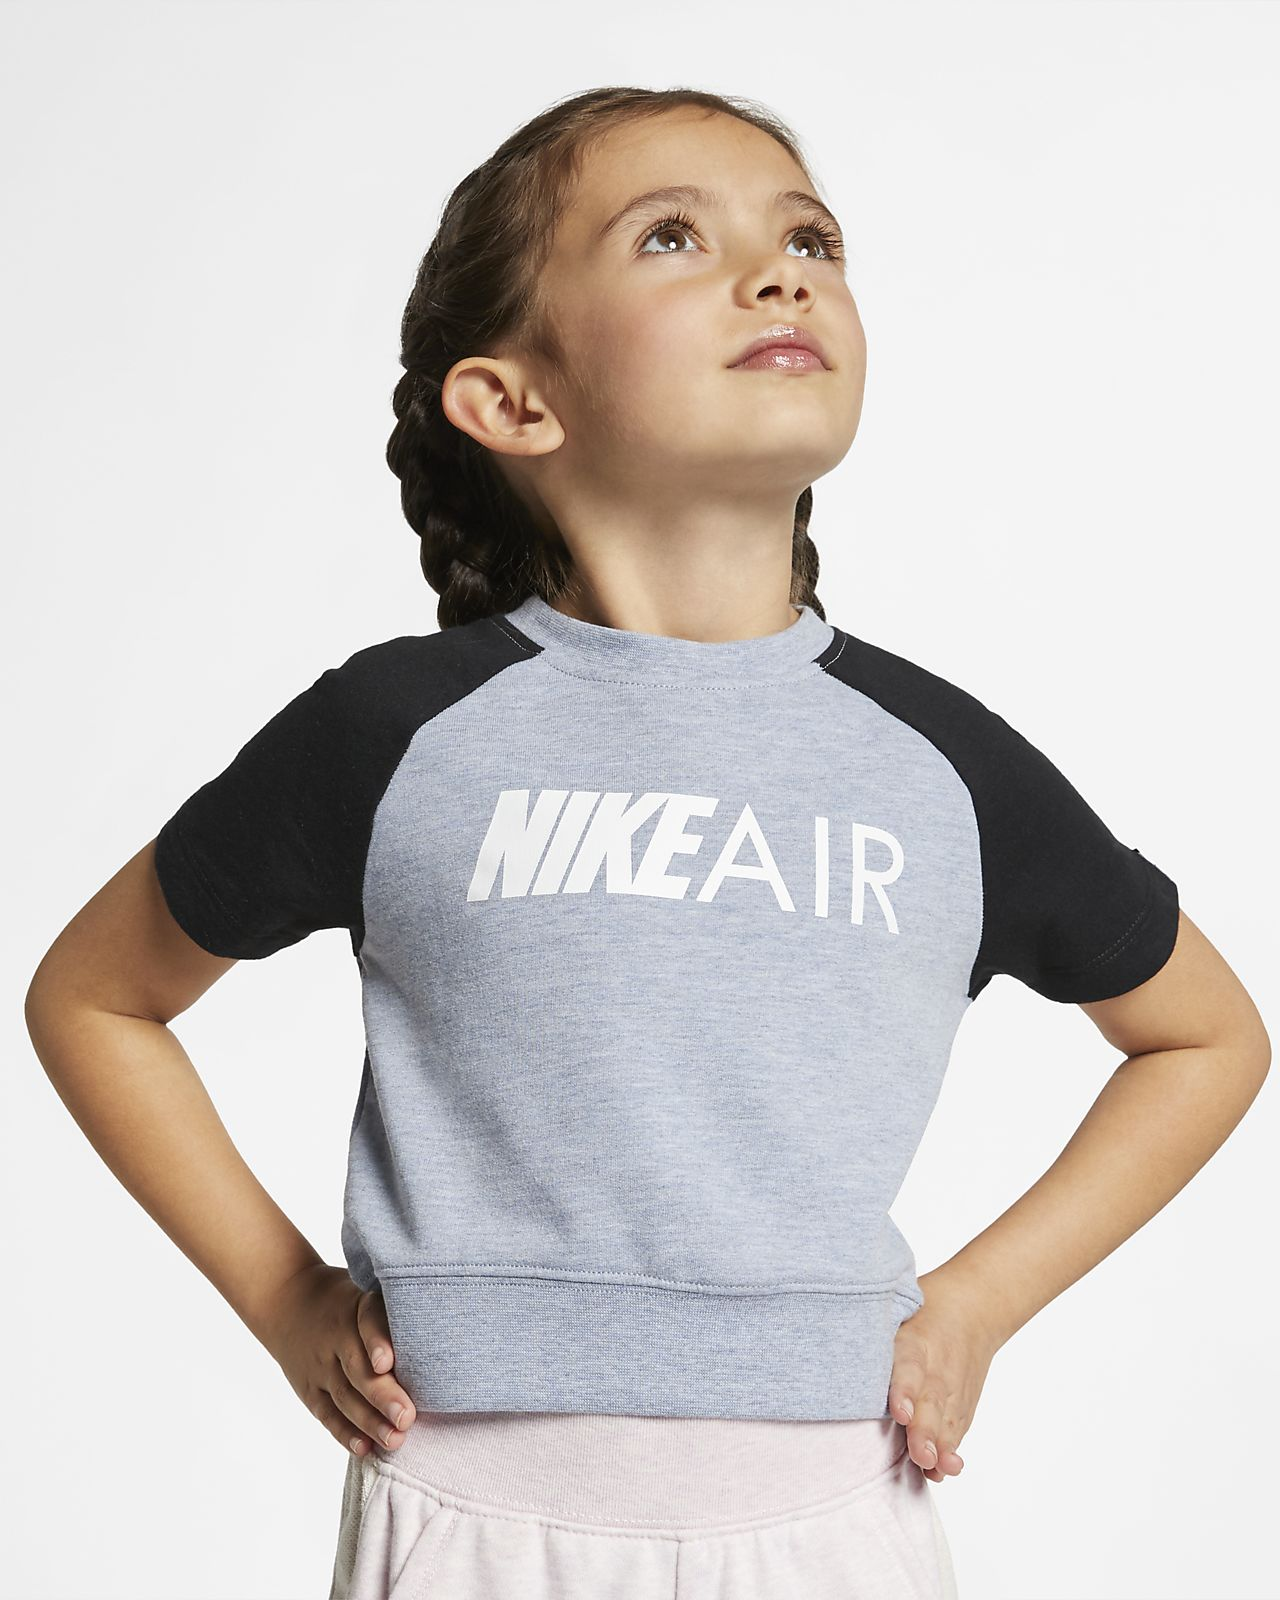 Nike Air Little Kids' Cropped Top